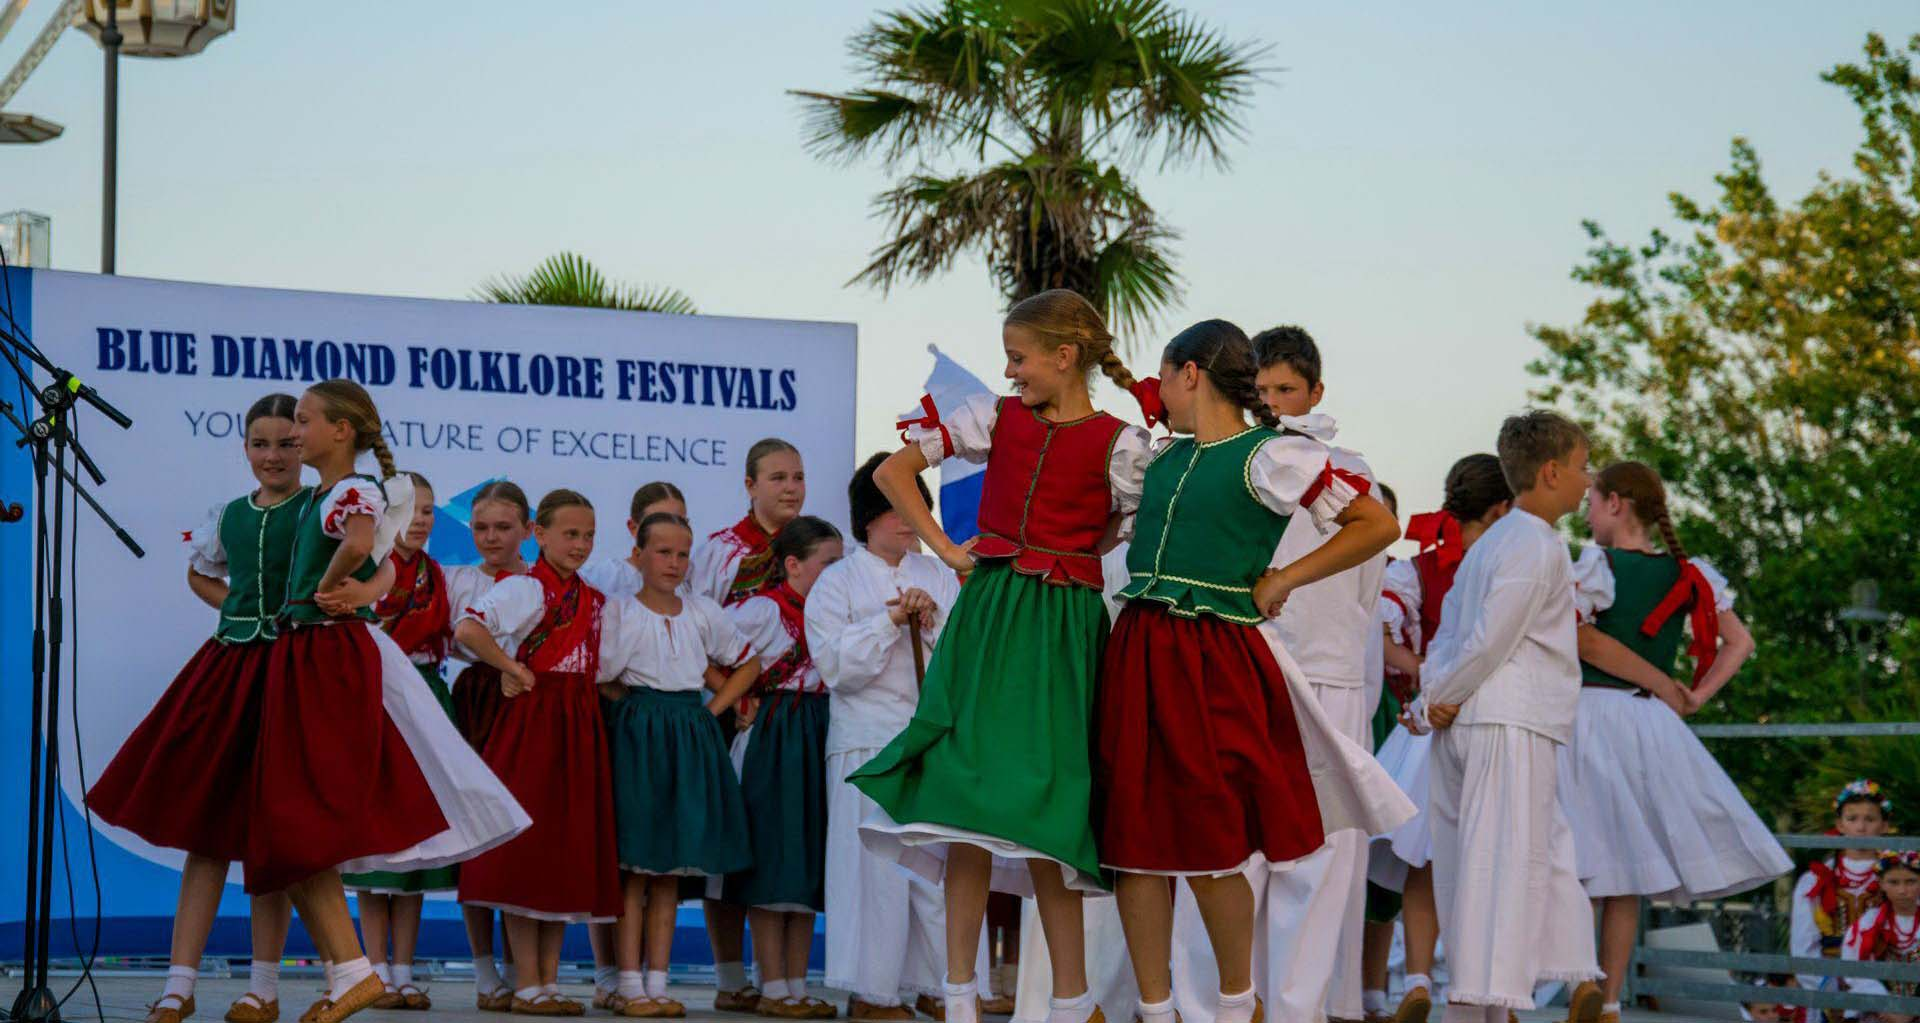 """TARANTELLA DEL VESUIVO"" SORRENTO, ΝAPLES – 25 – 29 June 2020 – VII INTERNATIONAL FOLKLORE FESTIVAL"